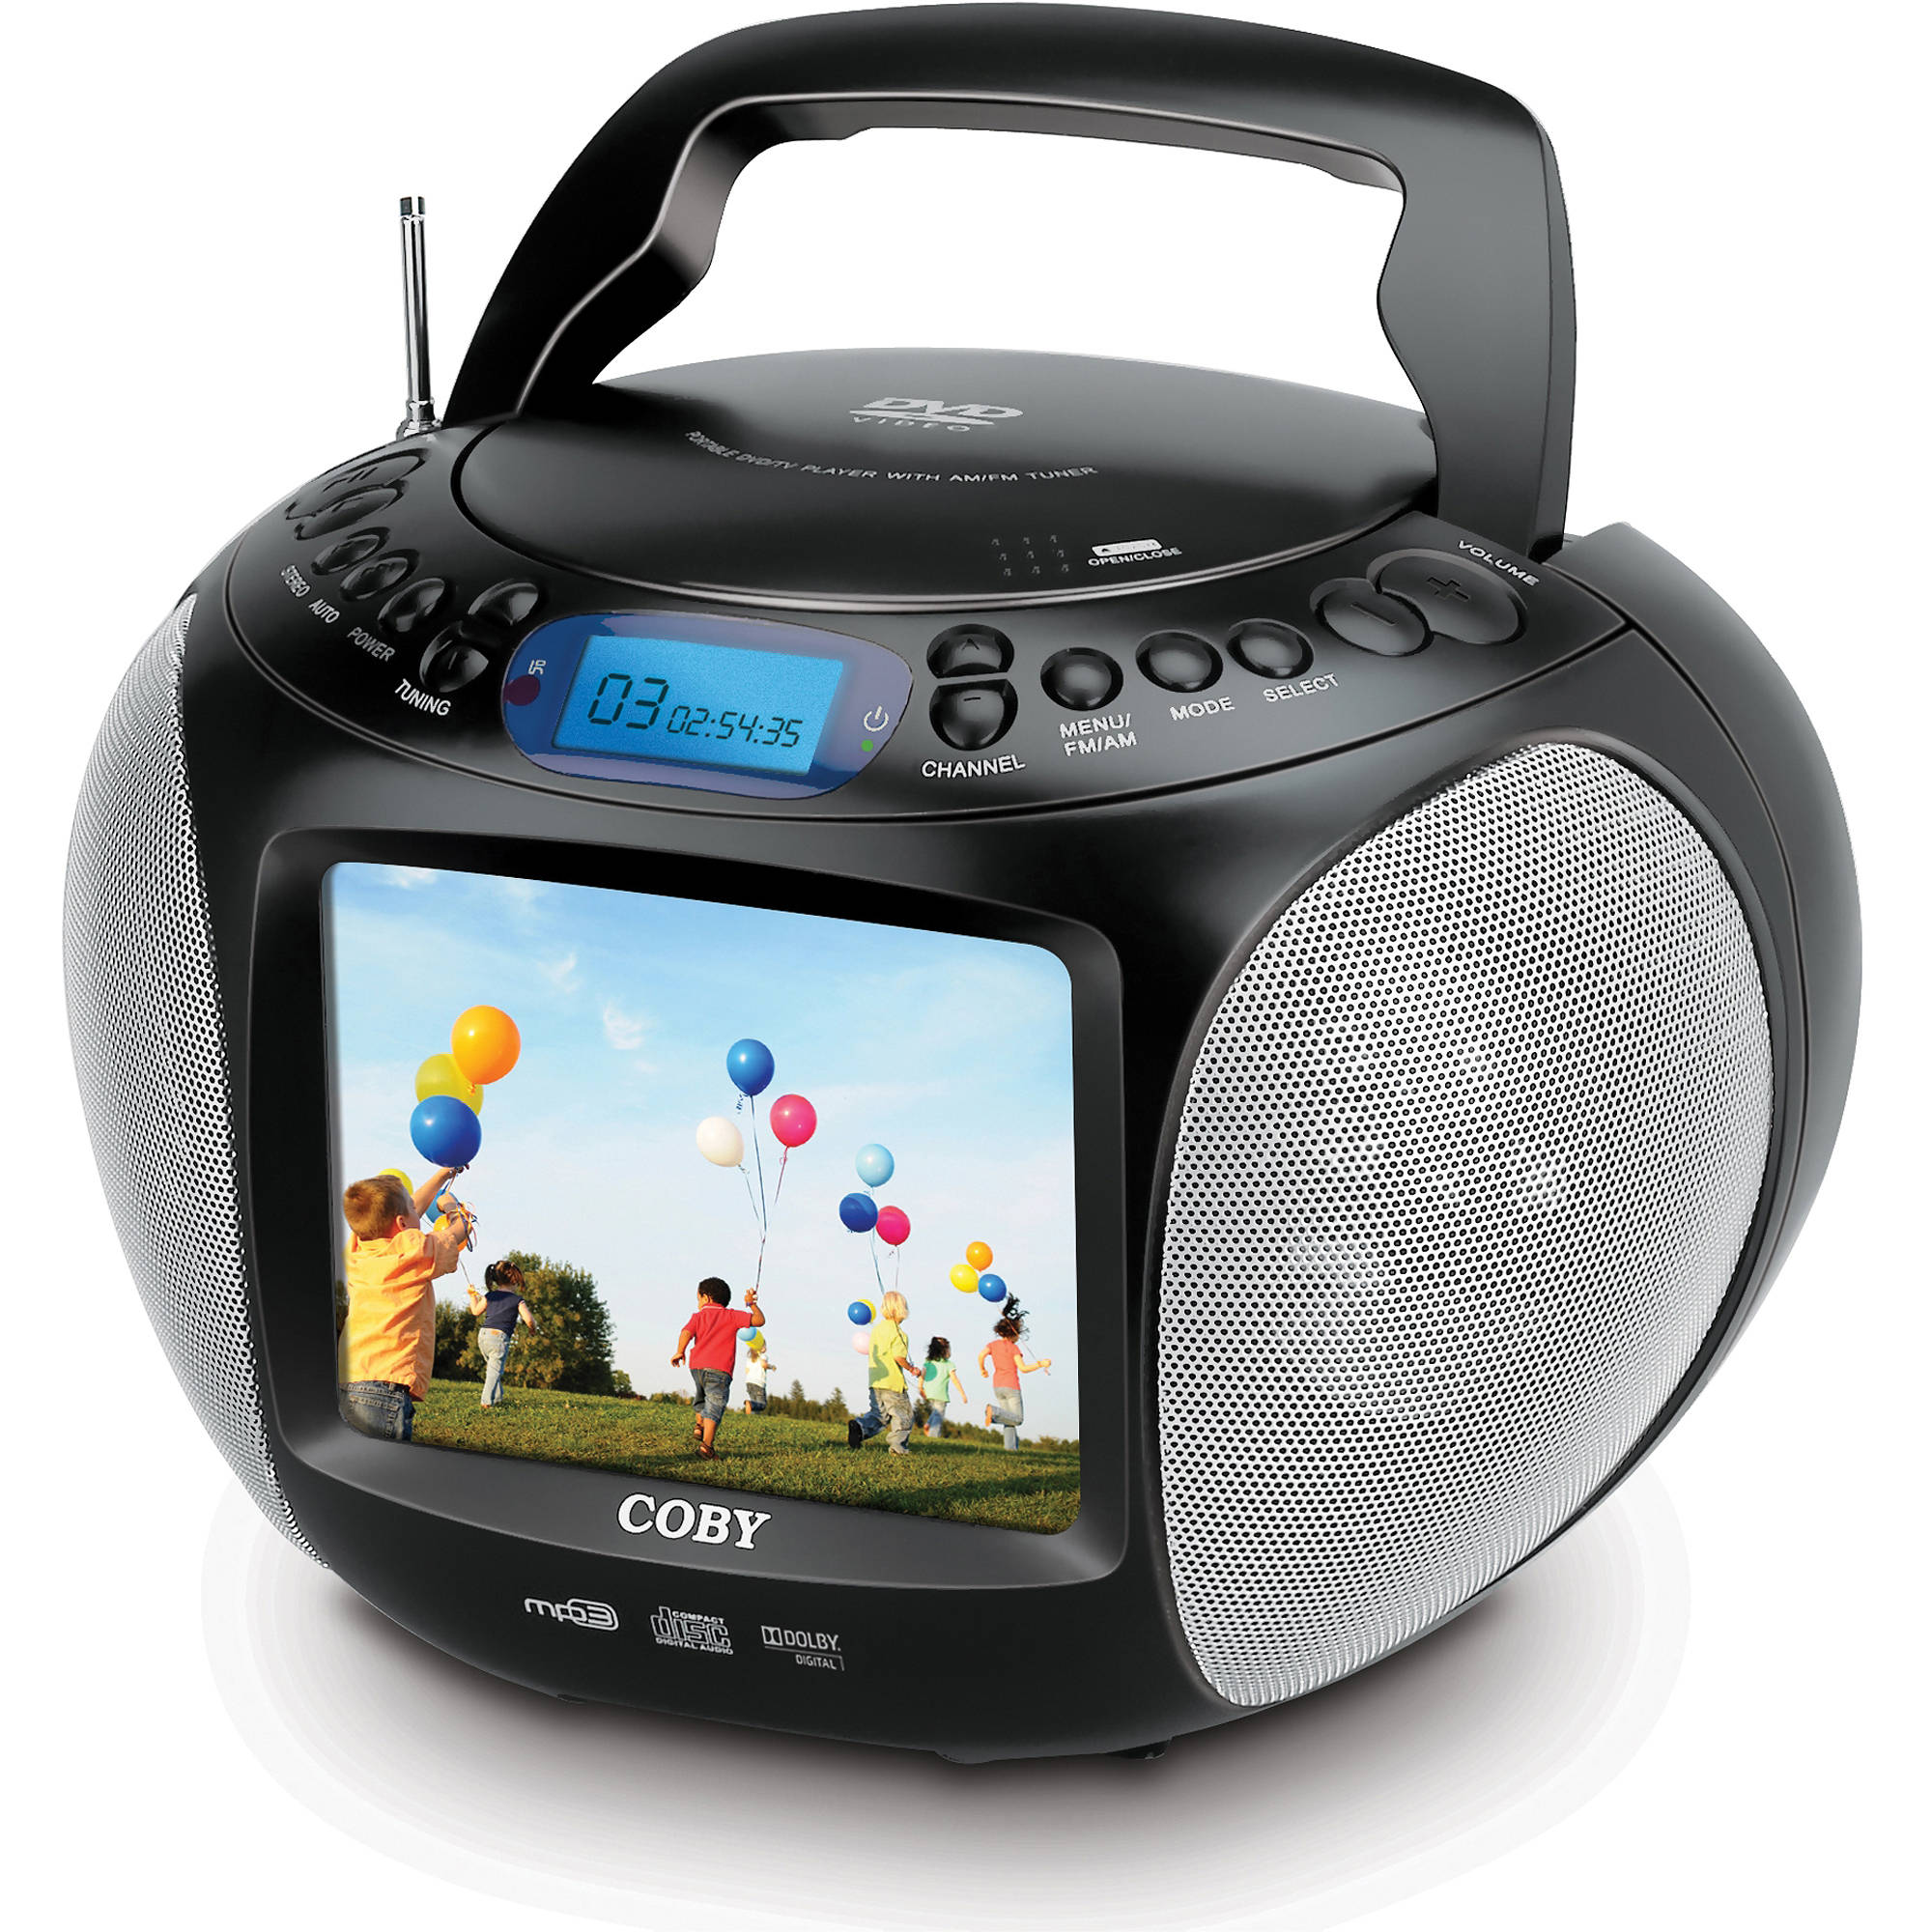 coby tfdvd577 5 6 portable dvd cd mp3 player w tfdvd577. Black Bedroom Furniture Sets. Home Design Ideas